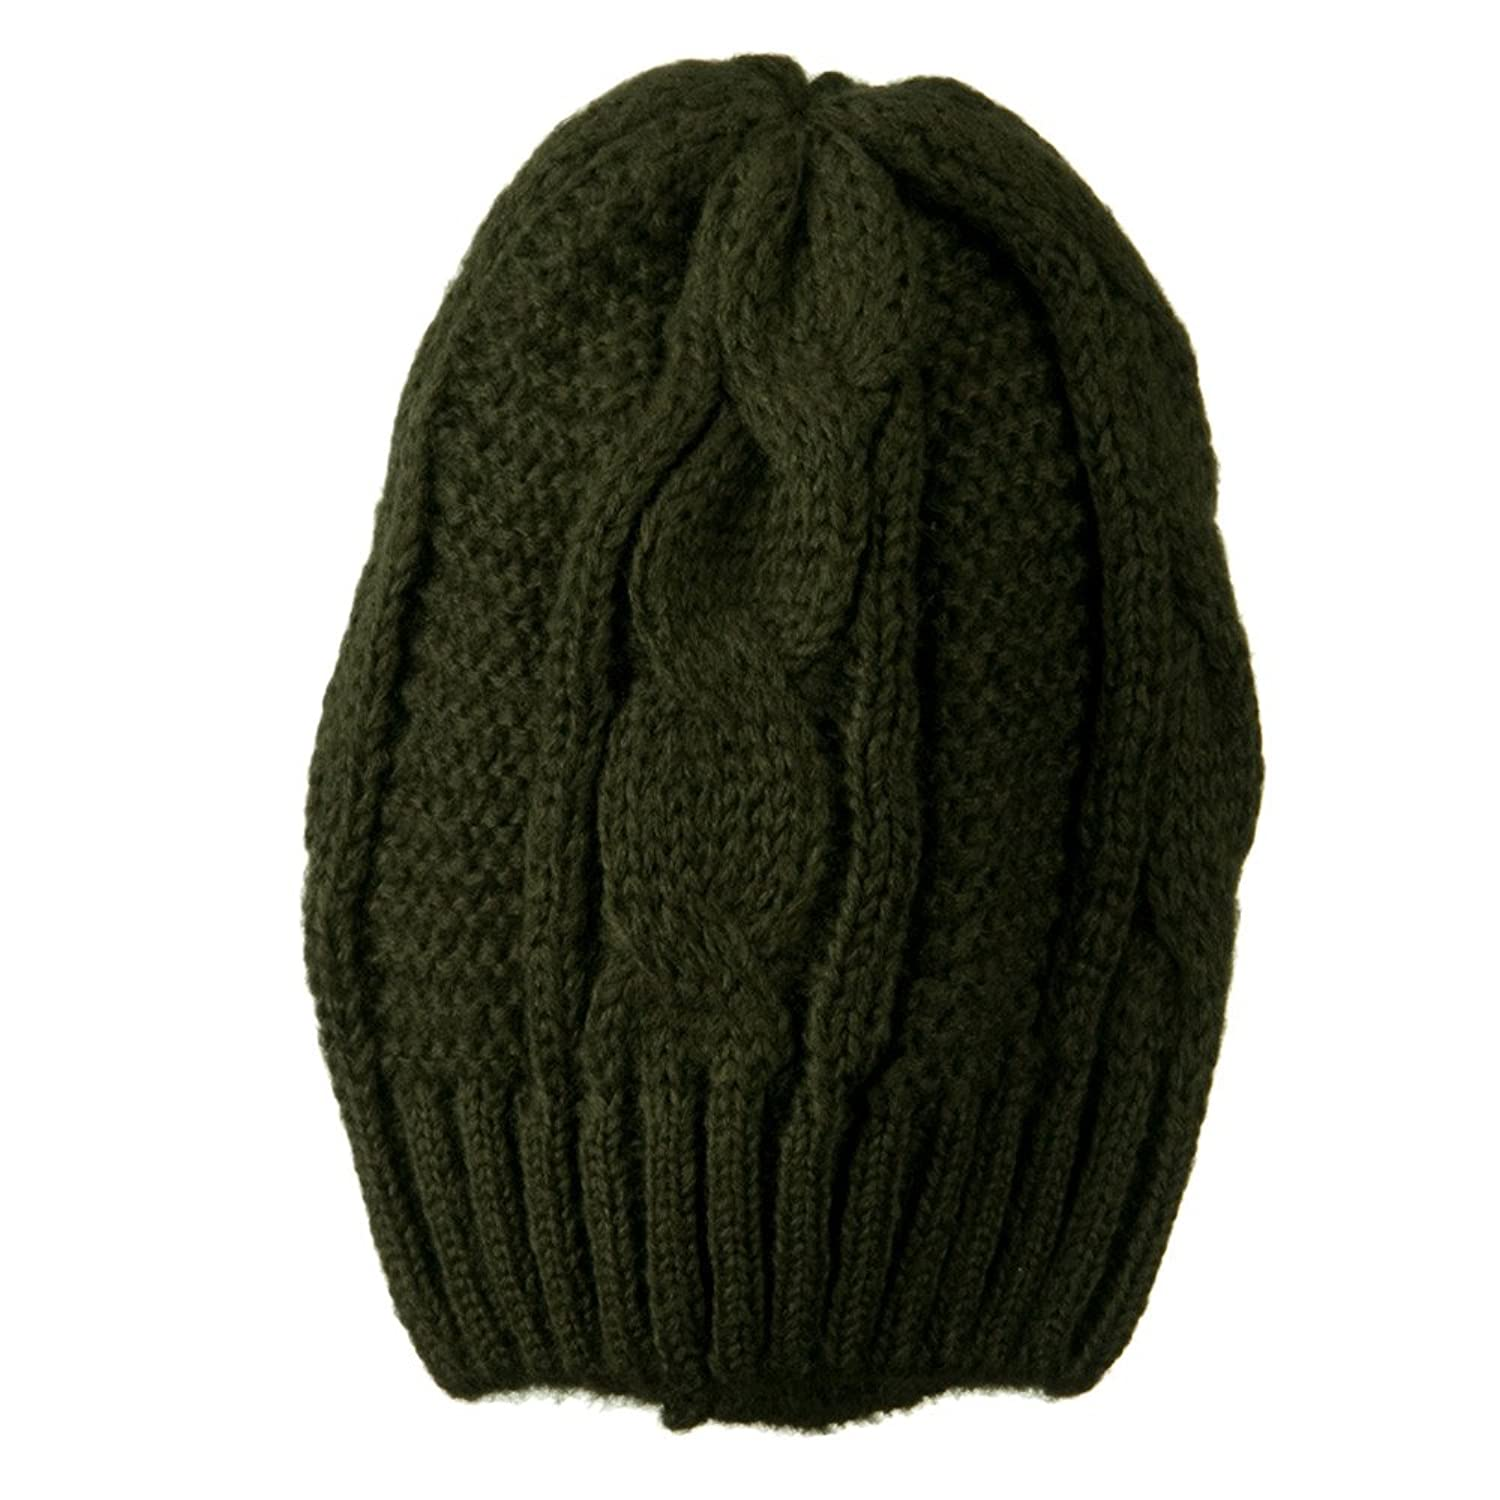 Big Skullie Cable Beanie - Olive W16S38F